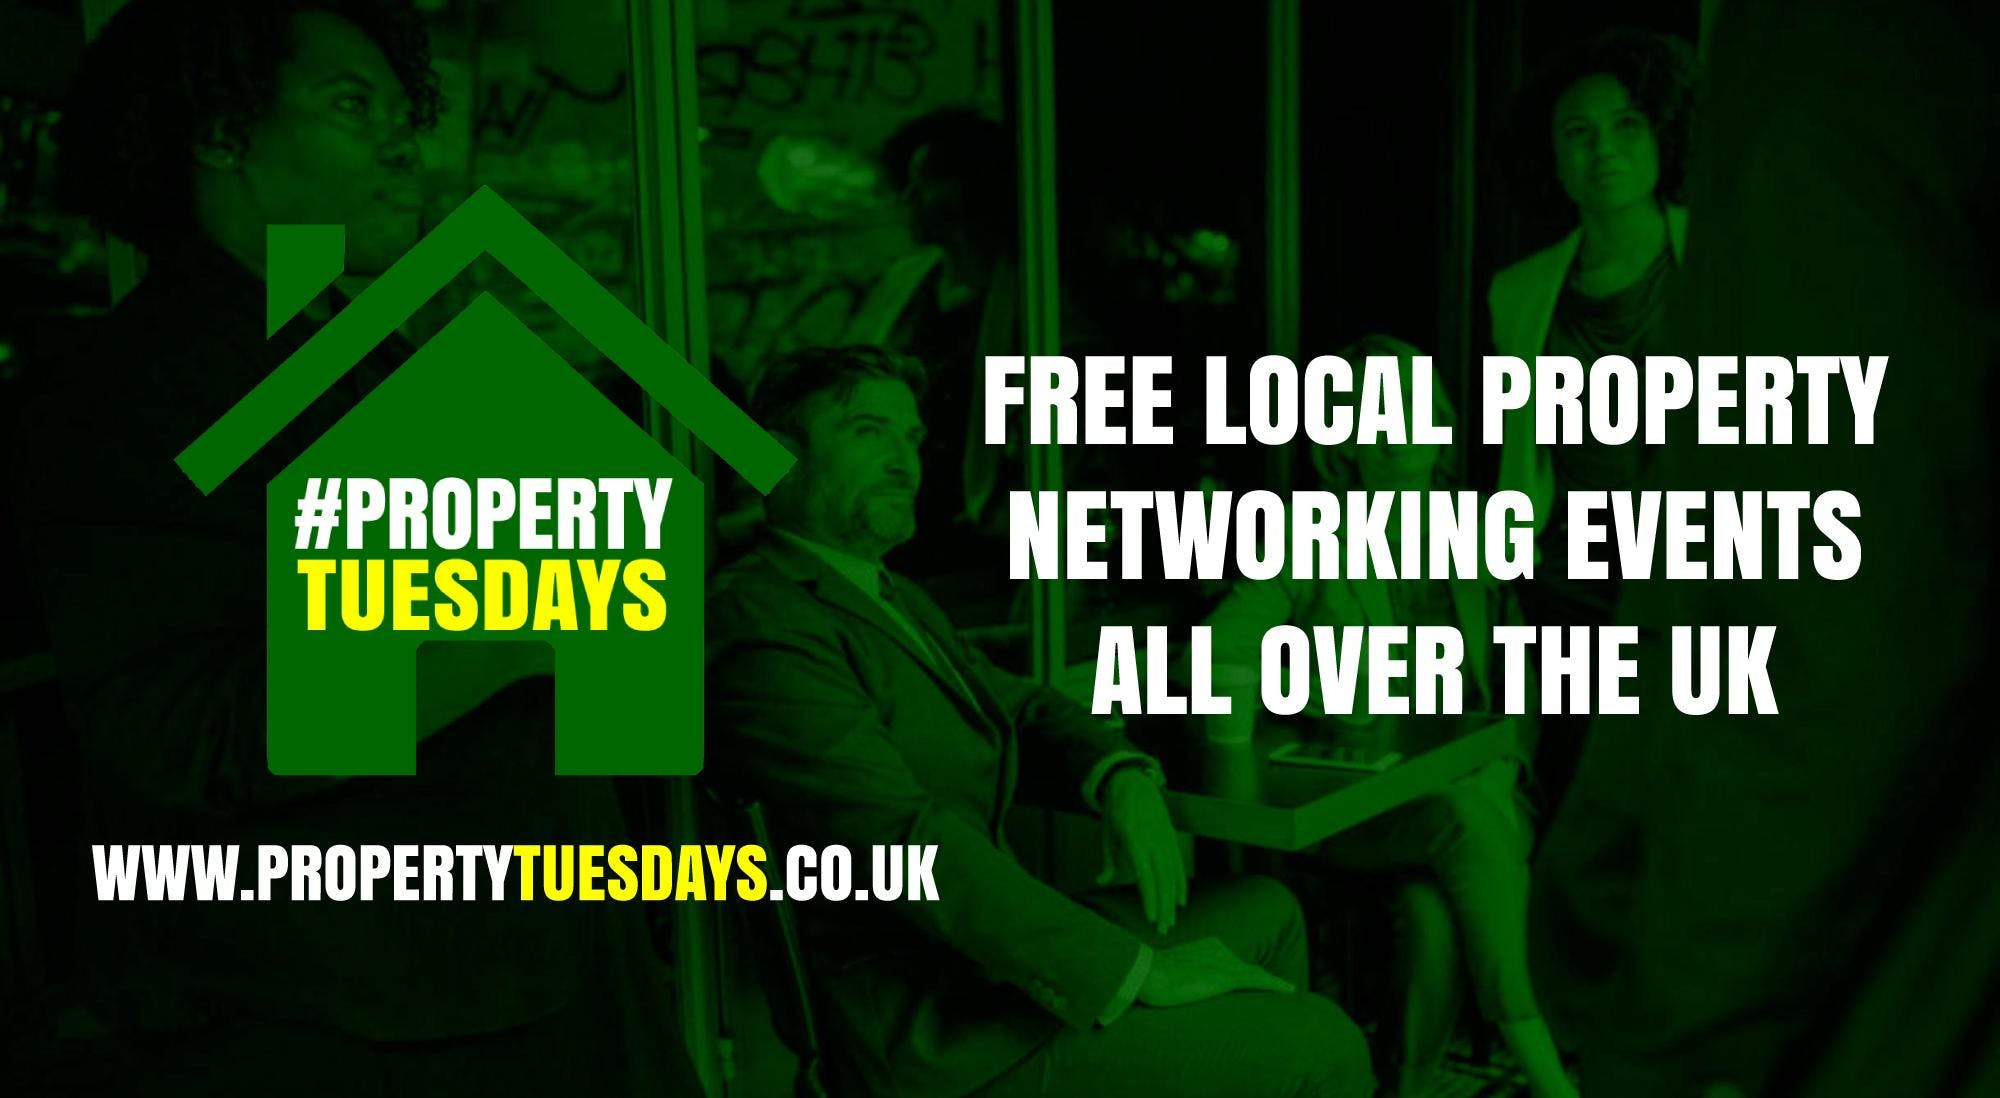 Property Tuesdays! Free property networking event in Barry